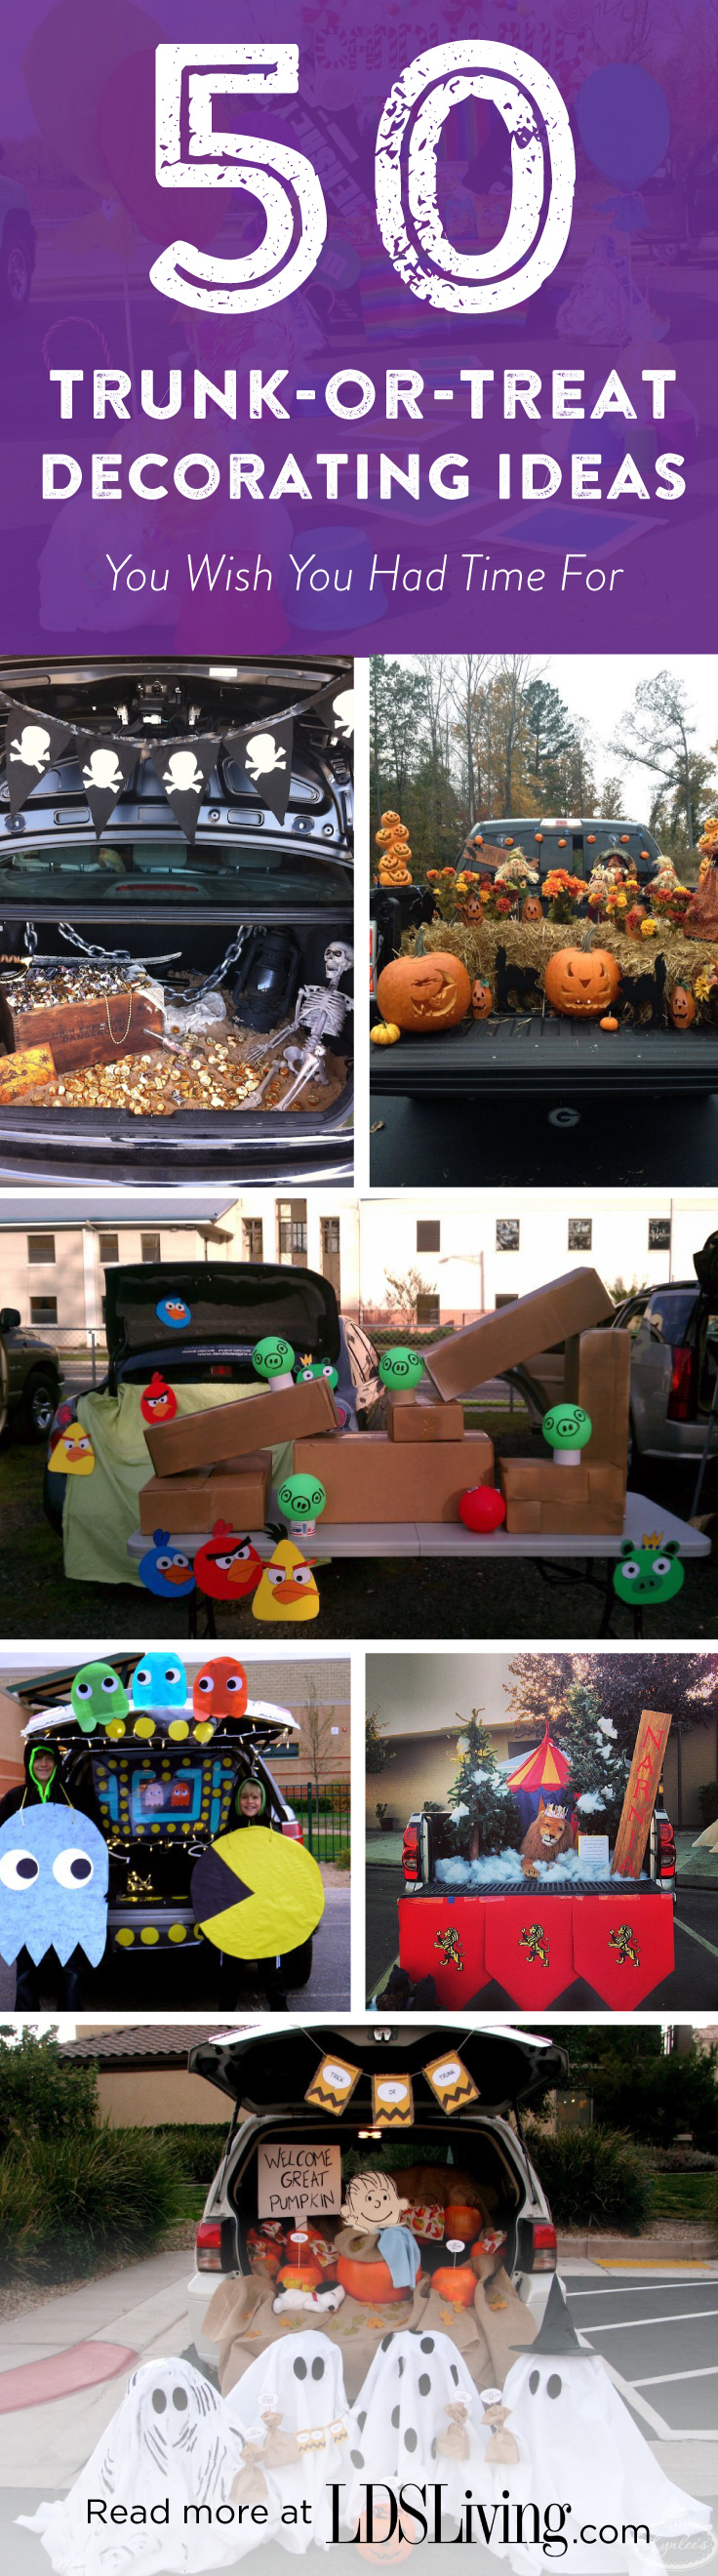 50 Trunk Or Treat Decorating Ideas You Wish You Had Time For Lds Living